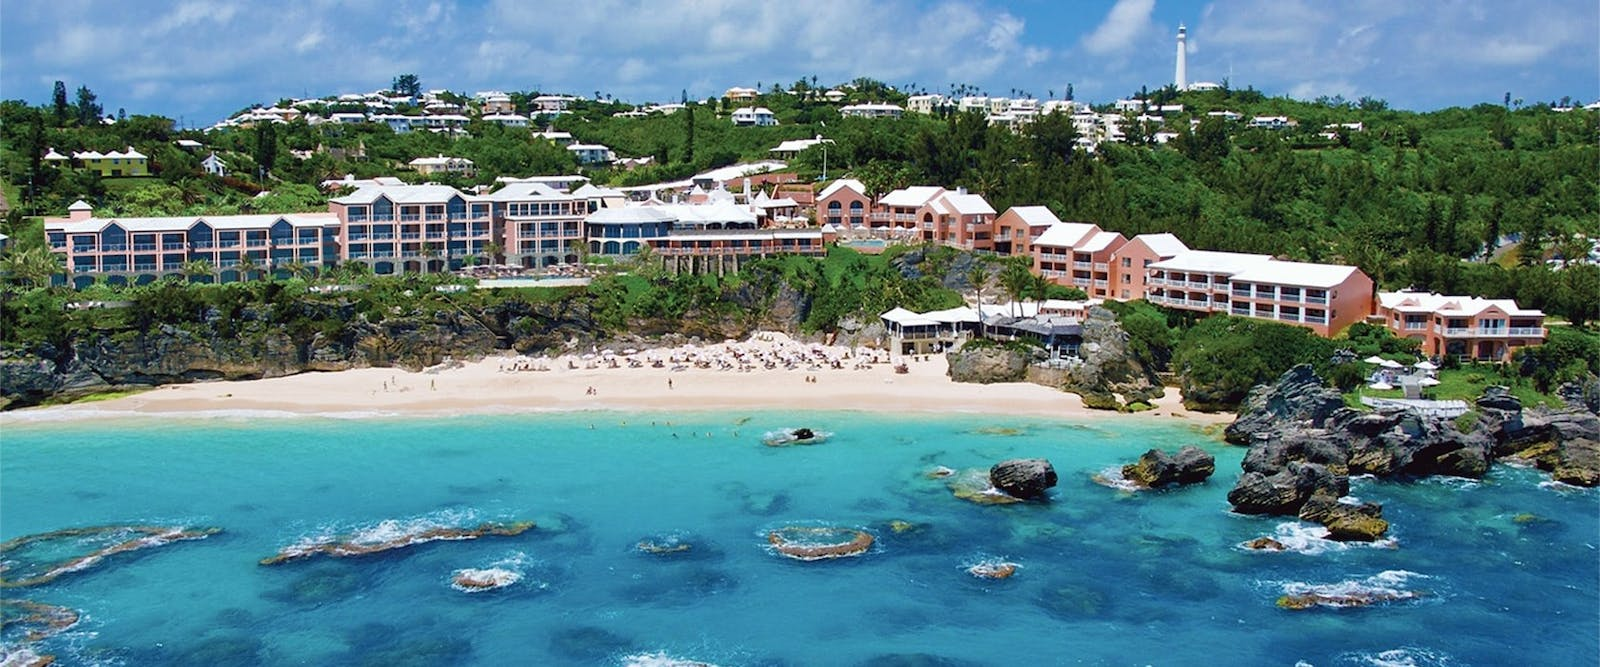 Aerial View of The Reefs Hotel & Club, Bermuda